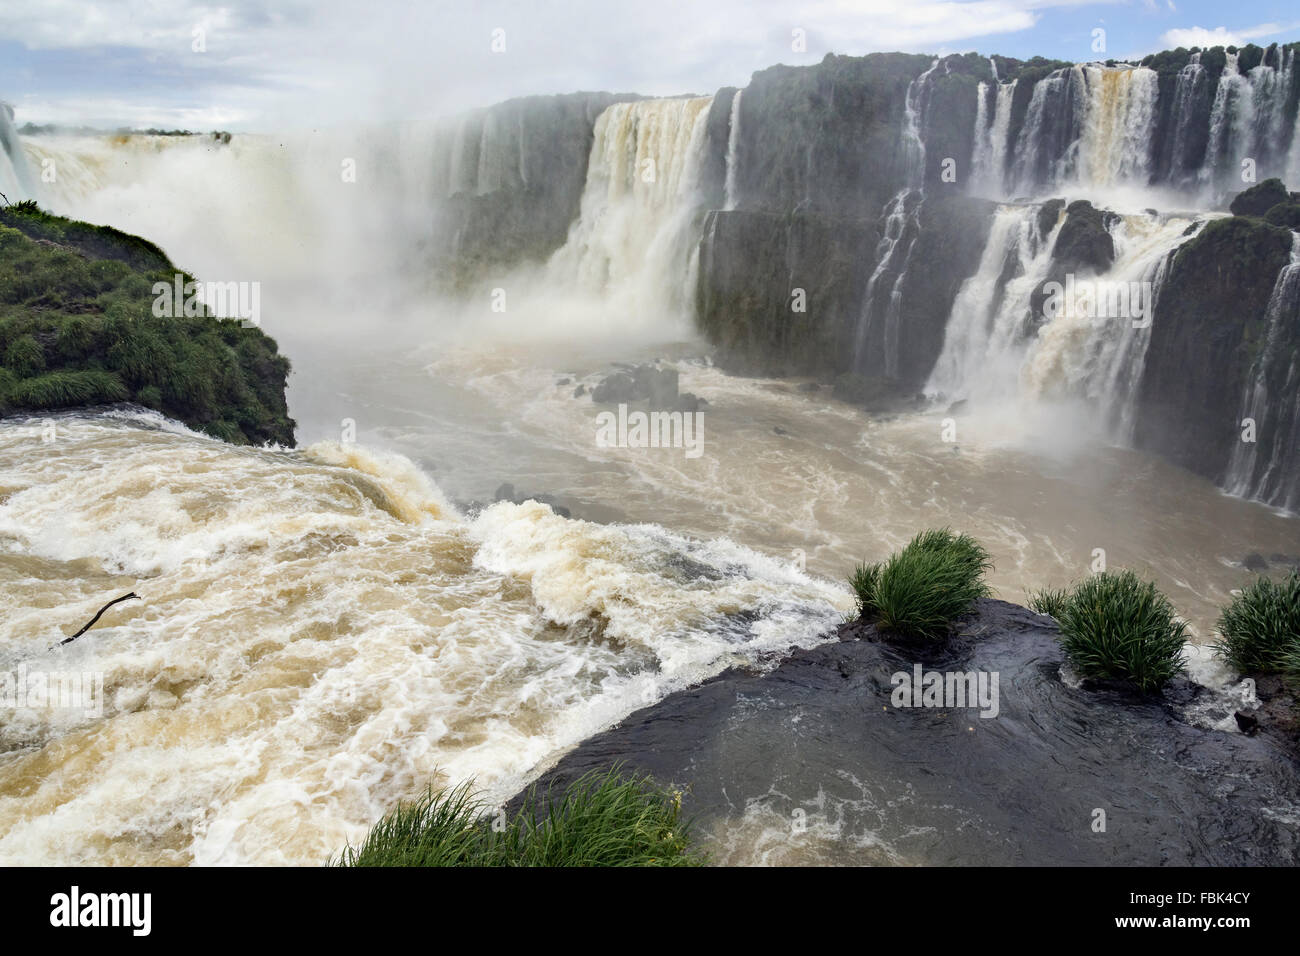 Devil's Throat from the end of the walkway, Foz do Iguacu, Brazil side - Stock Image